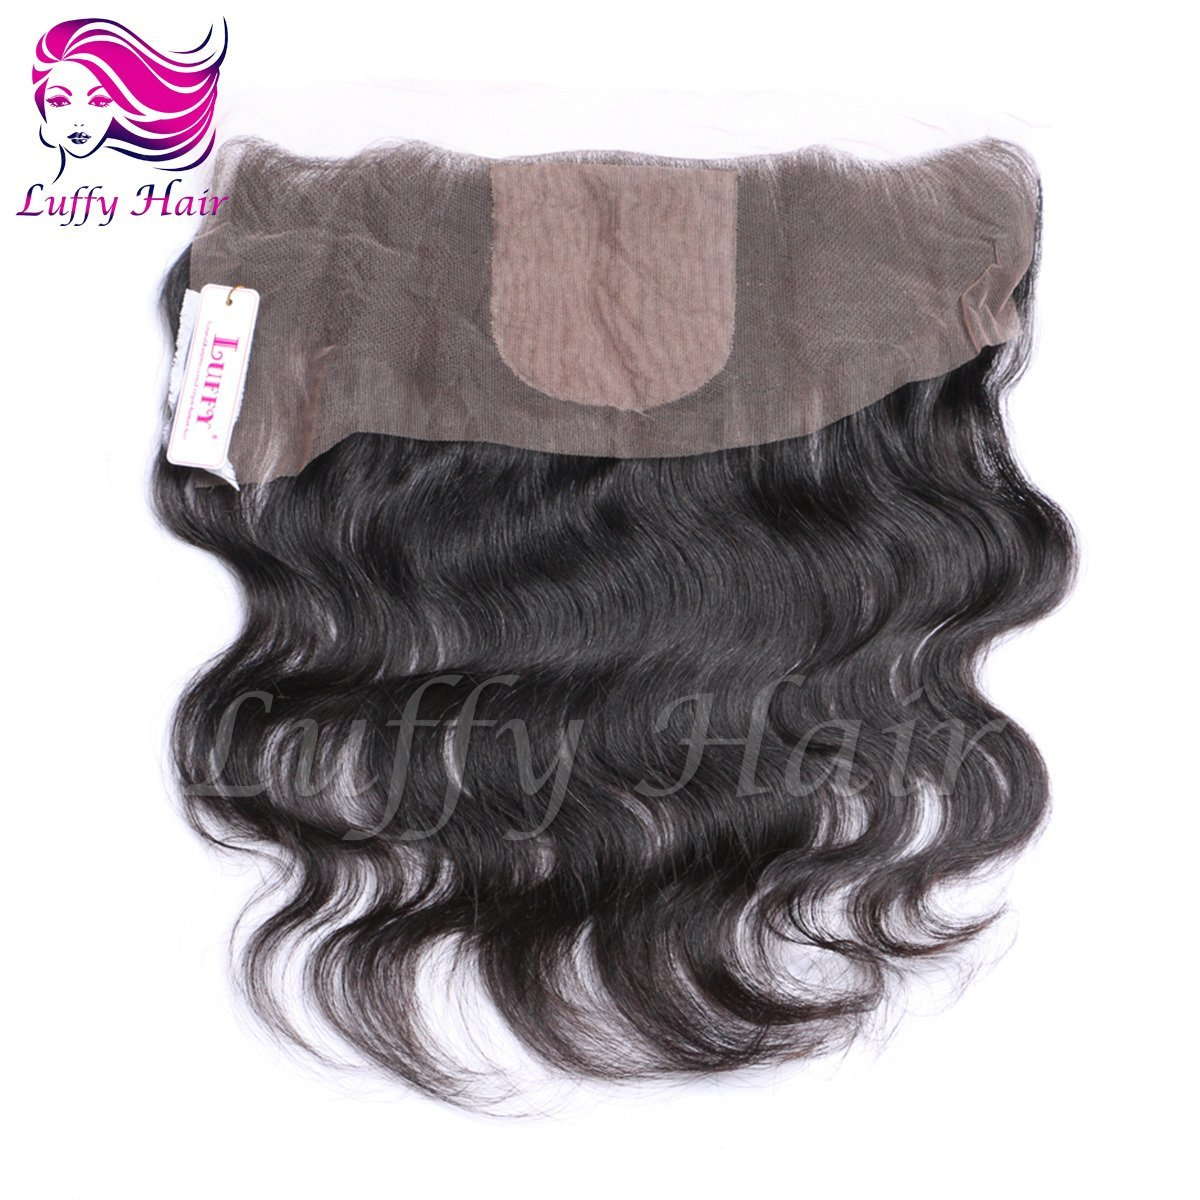 8A Virgin Human Hair 13x4 Body Wave Lace Frontal With Silk Top - KCL001